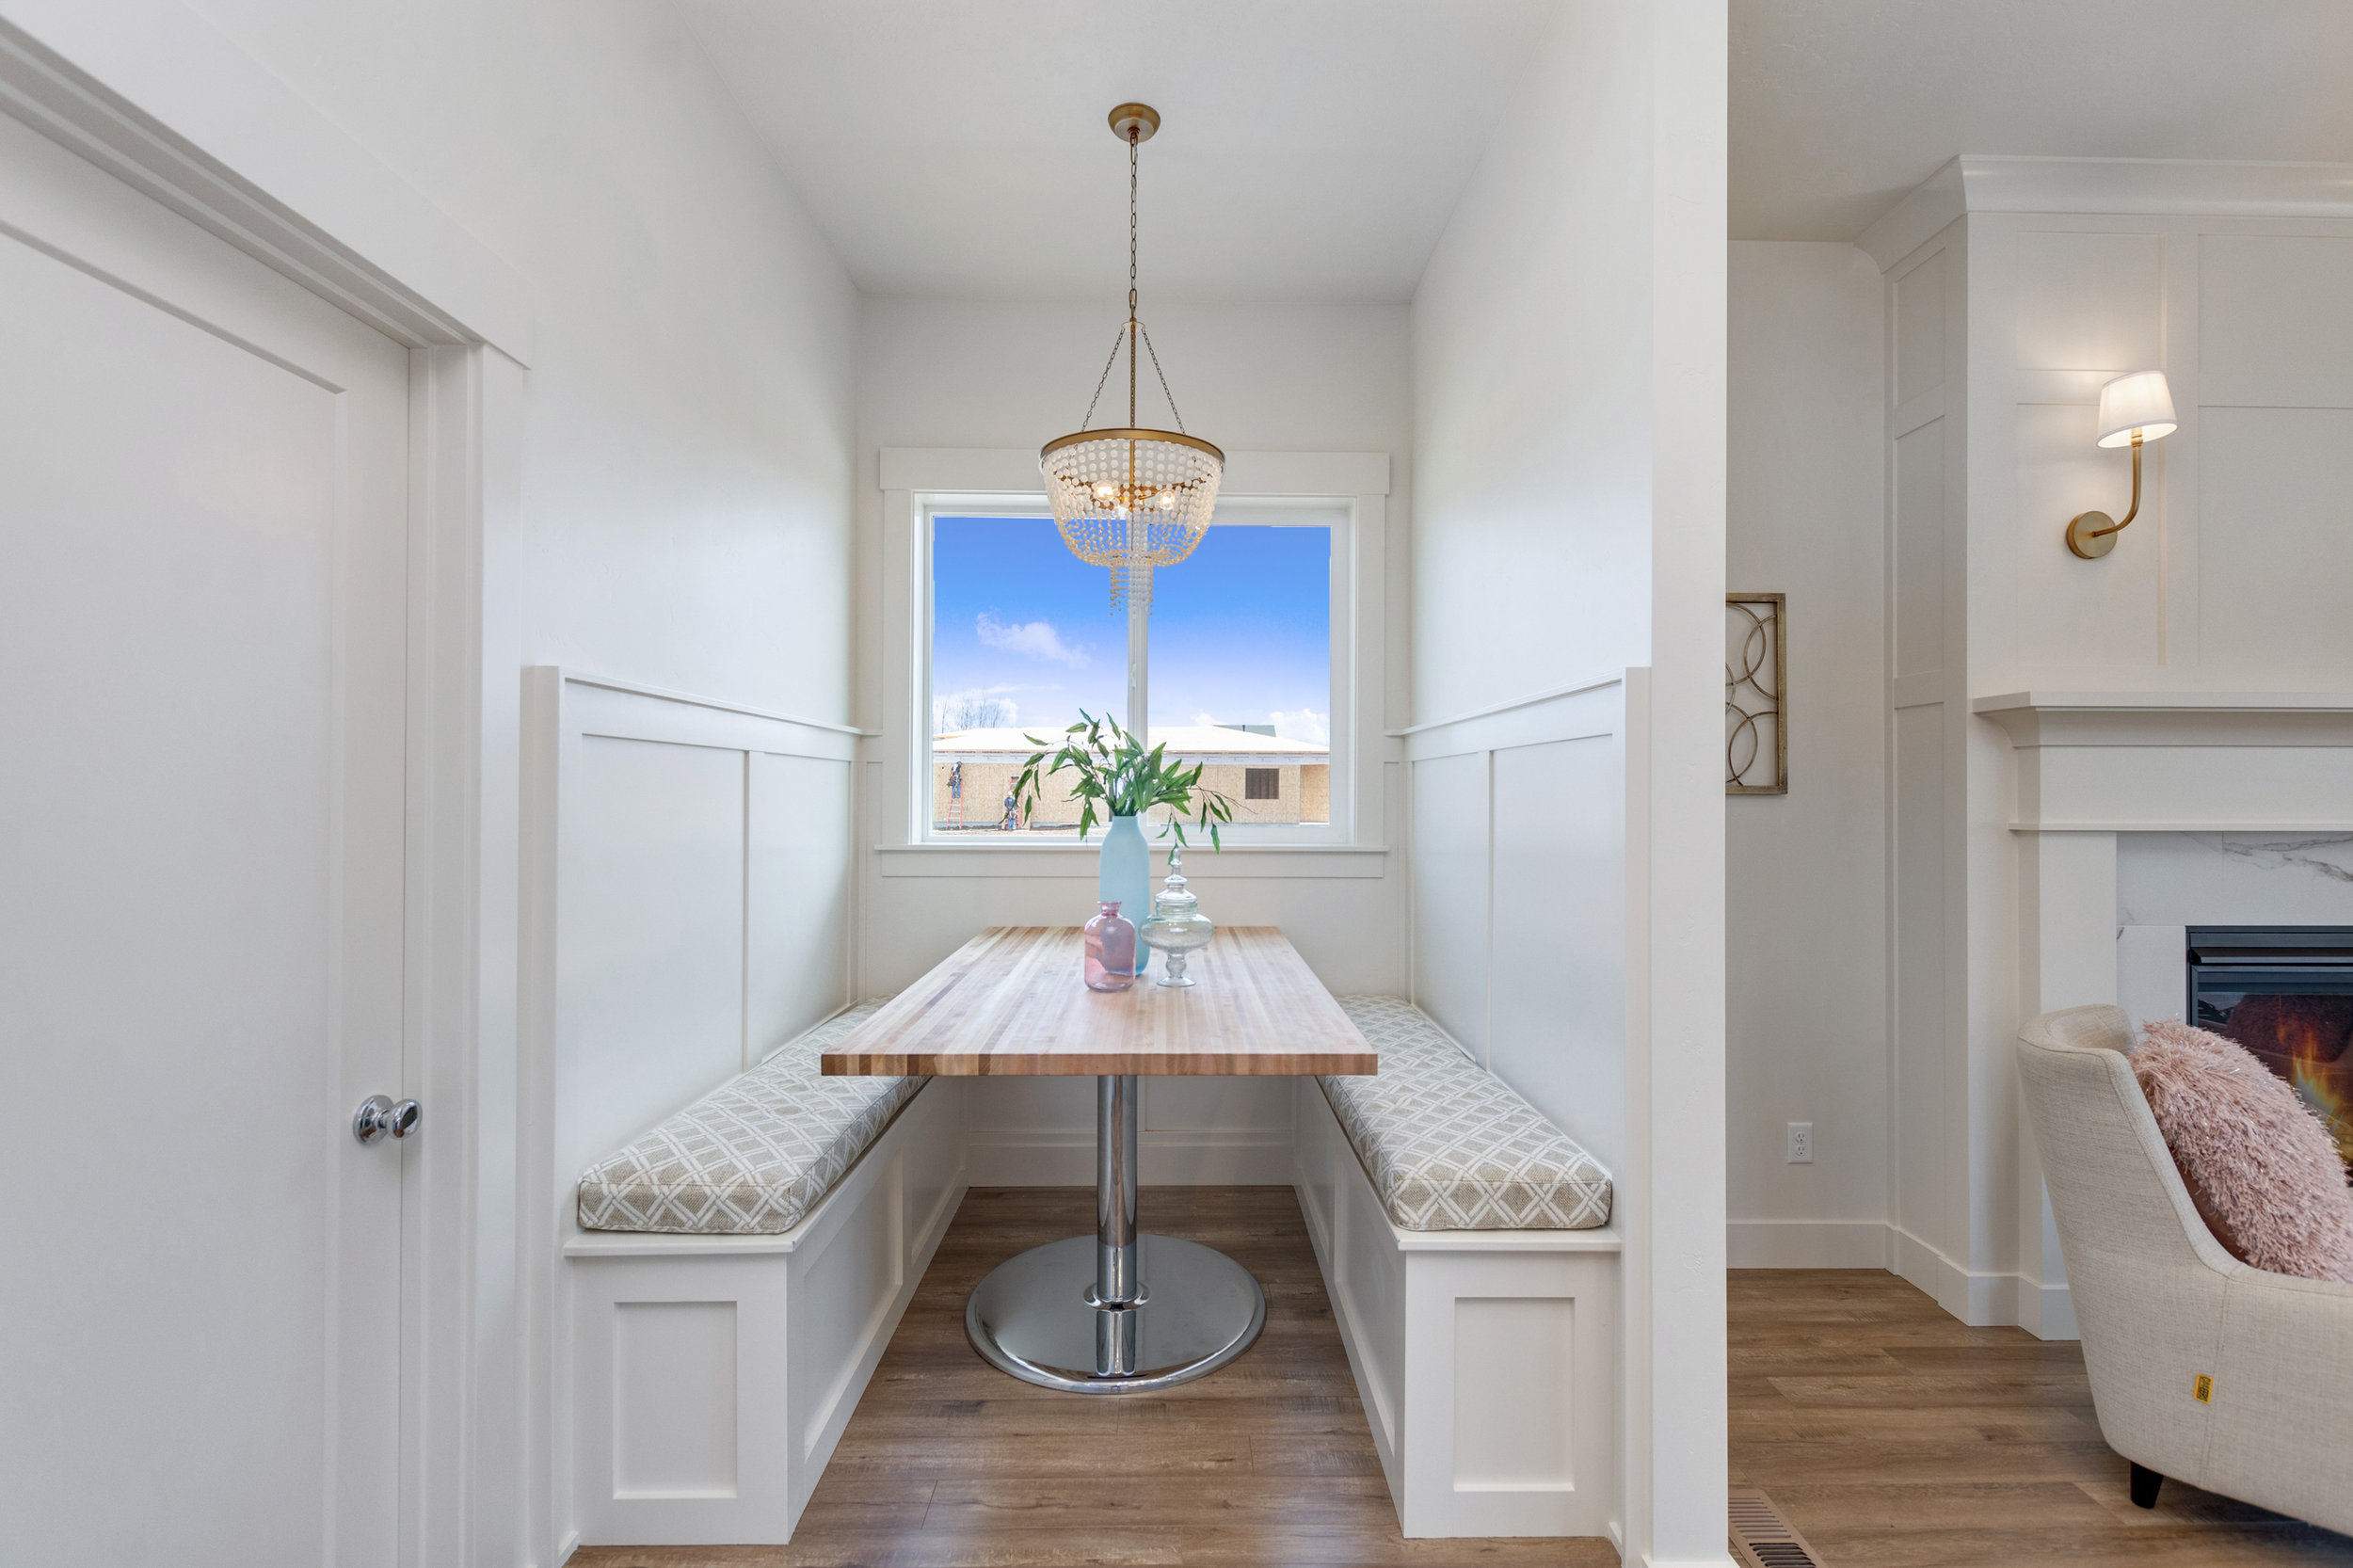 25-Breakfast Nook.jpg